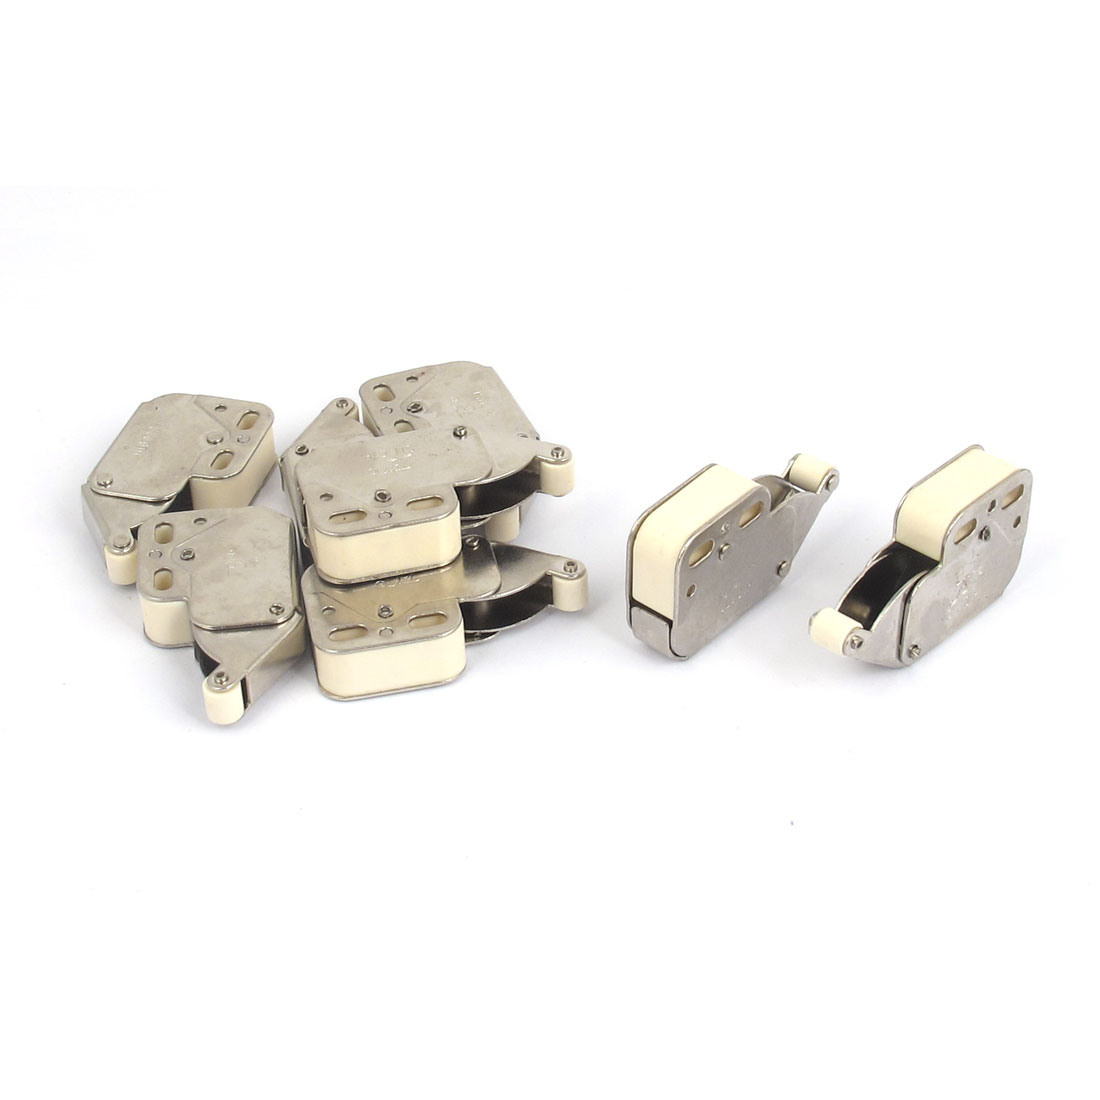 Furniture Push-to-Open One-touch Cabinet Cupboard Catch Latch 48mm Long 8Pcs